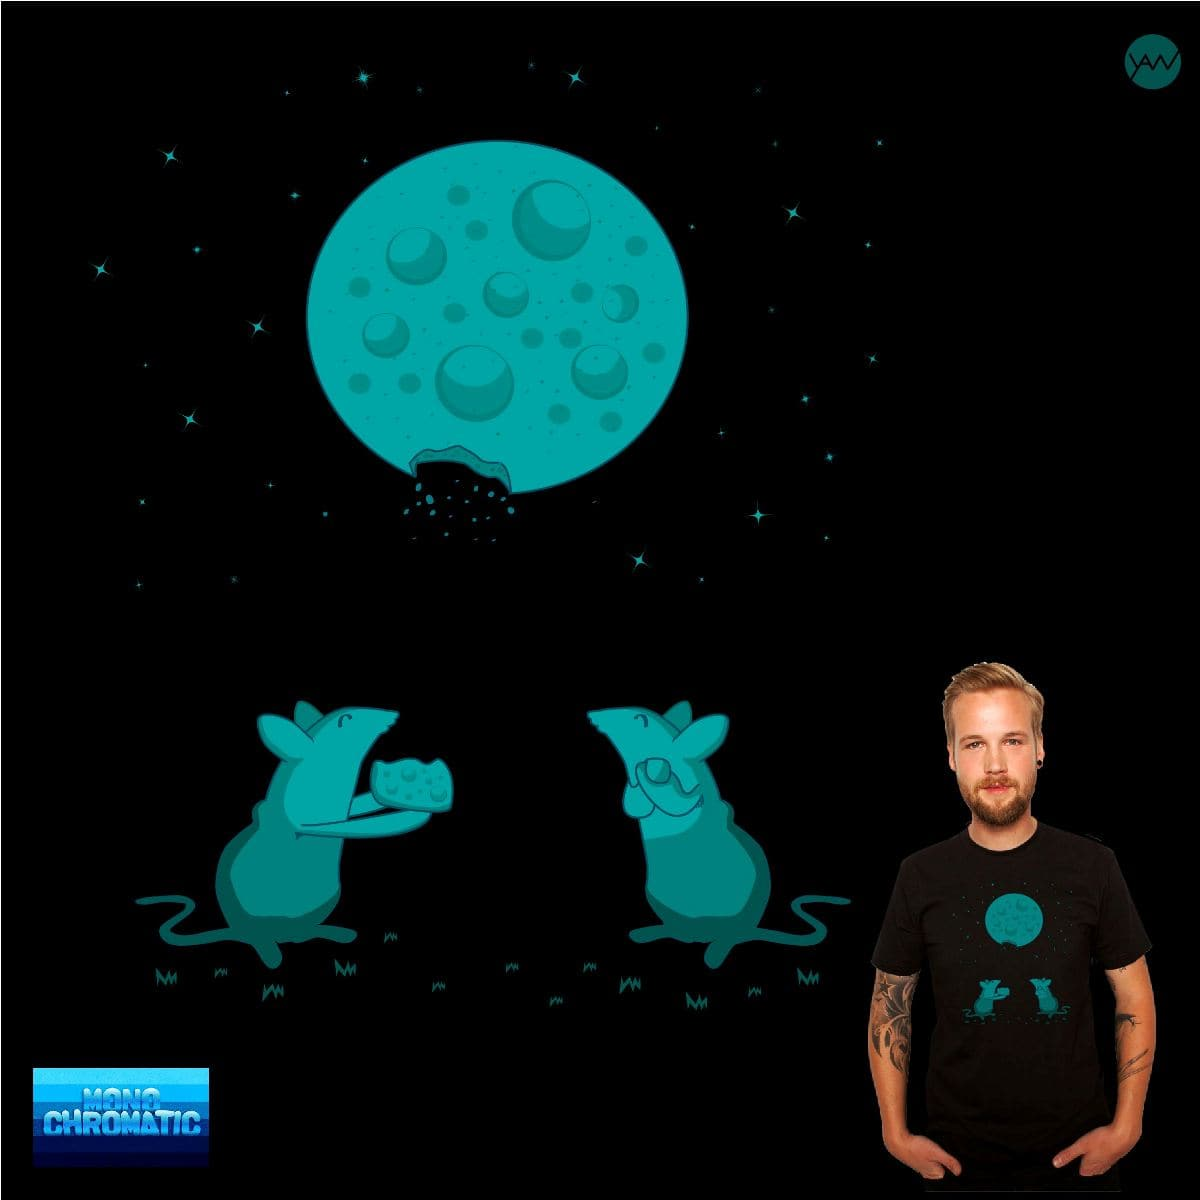 Cheese Moon by wimadeputra on Threadless